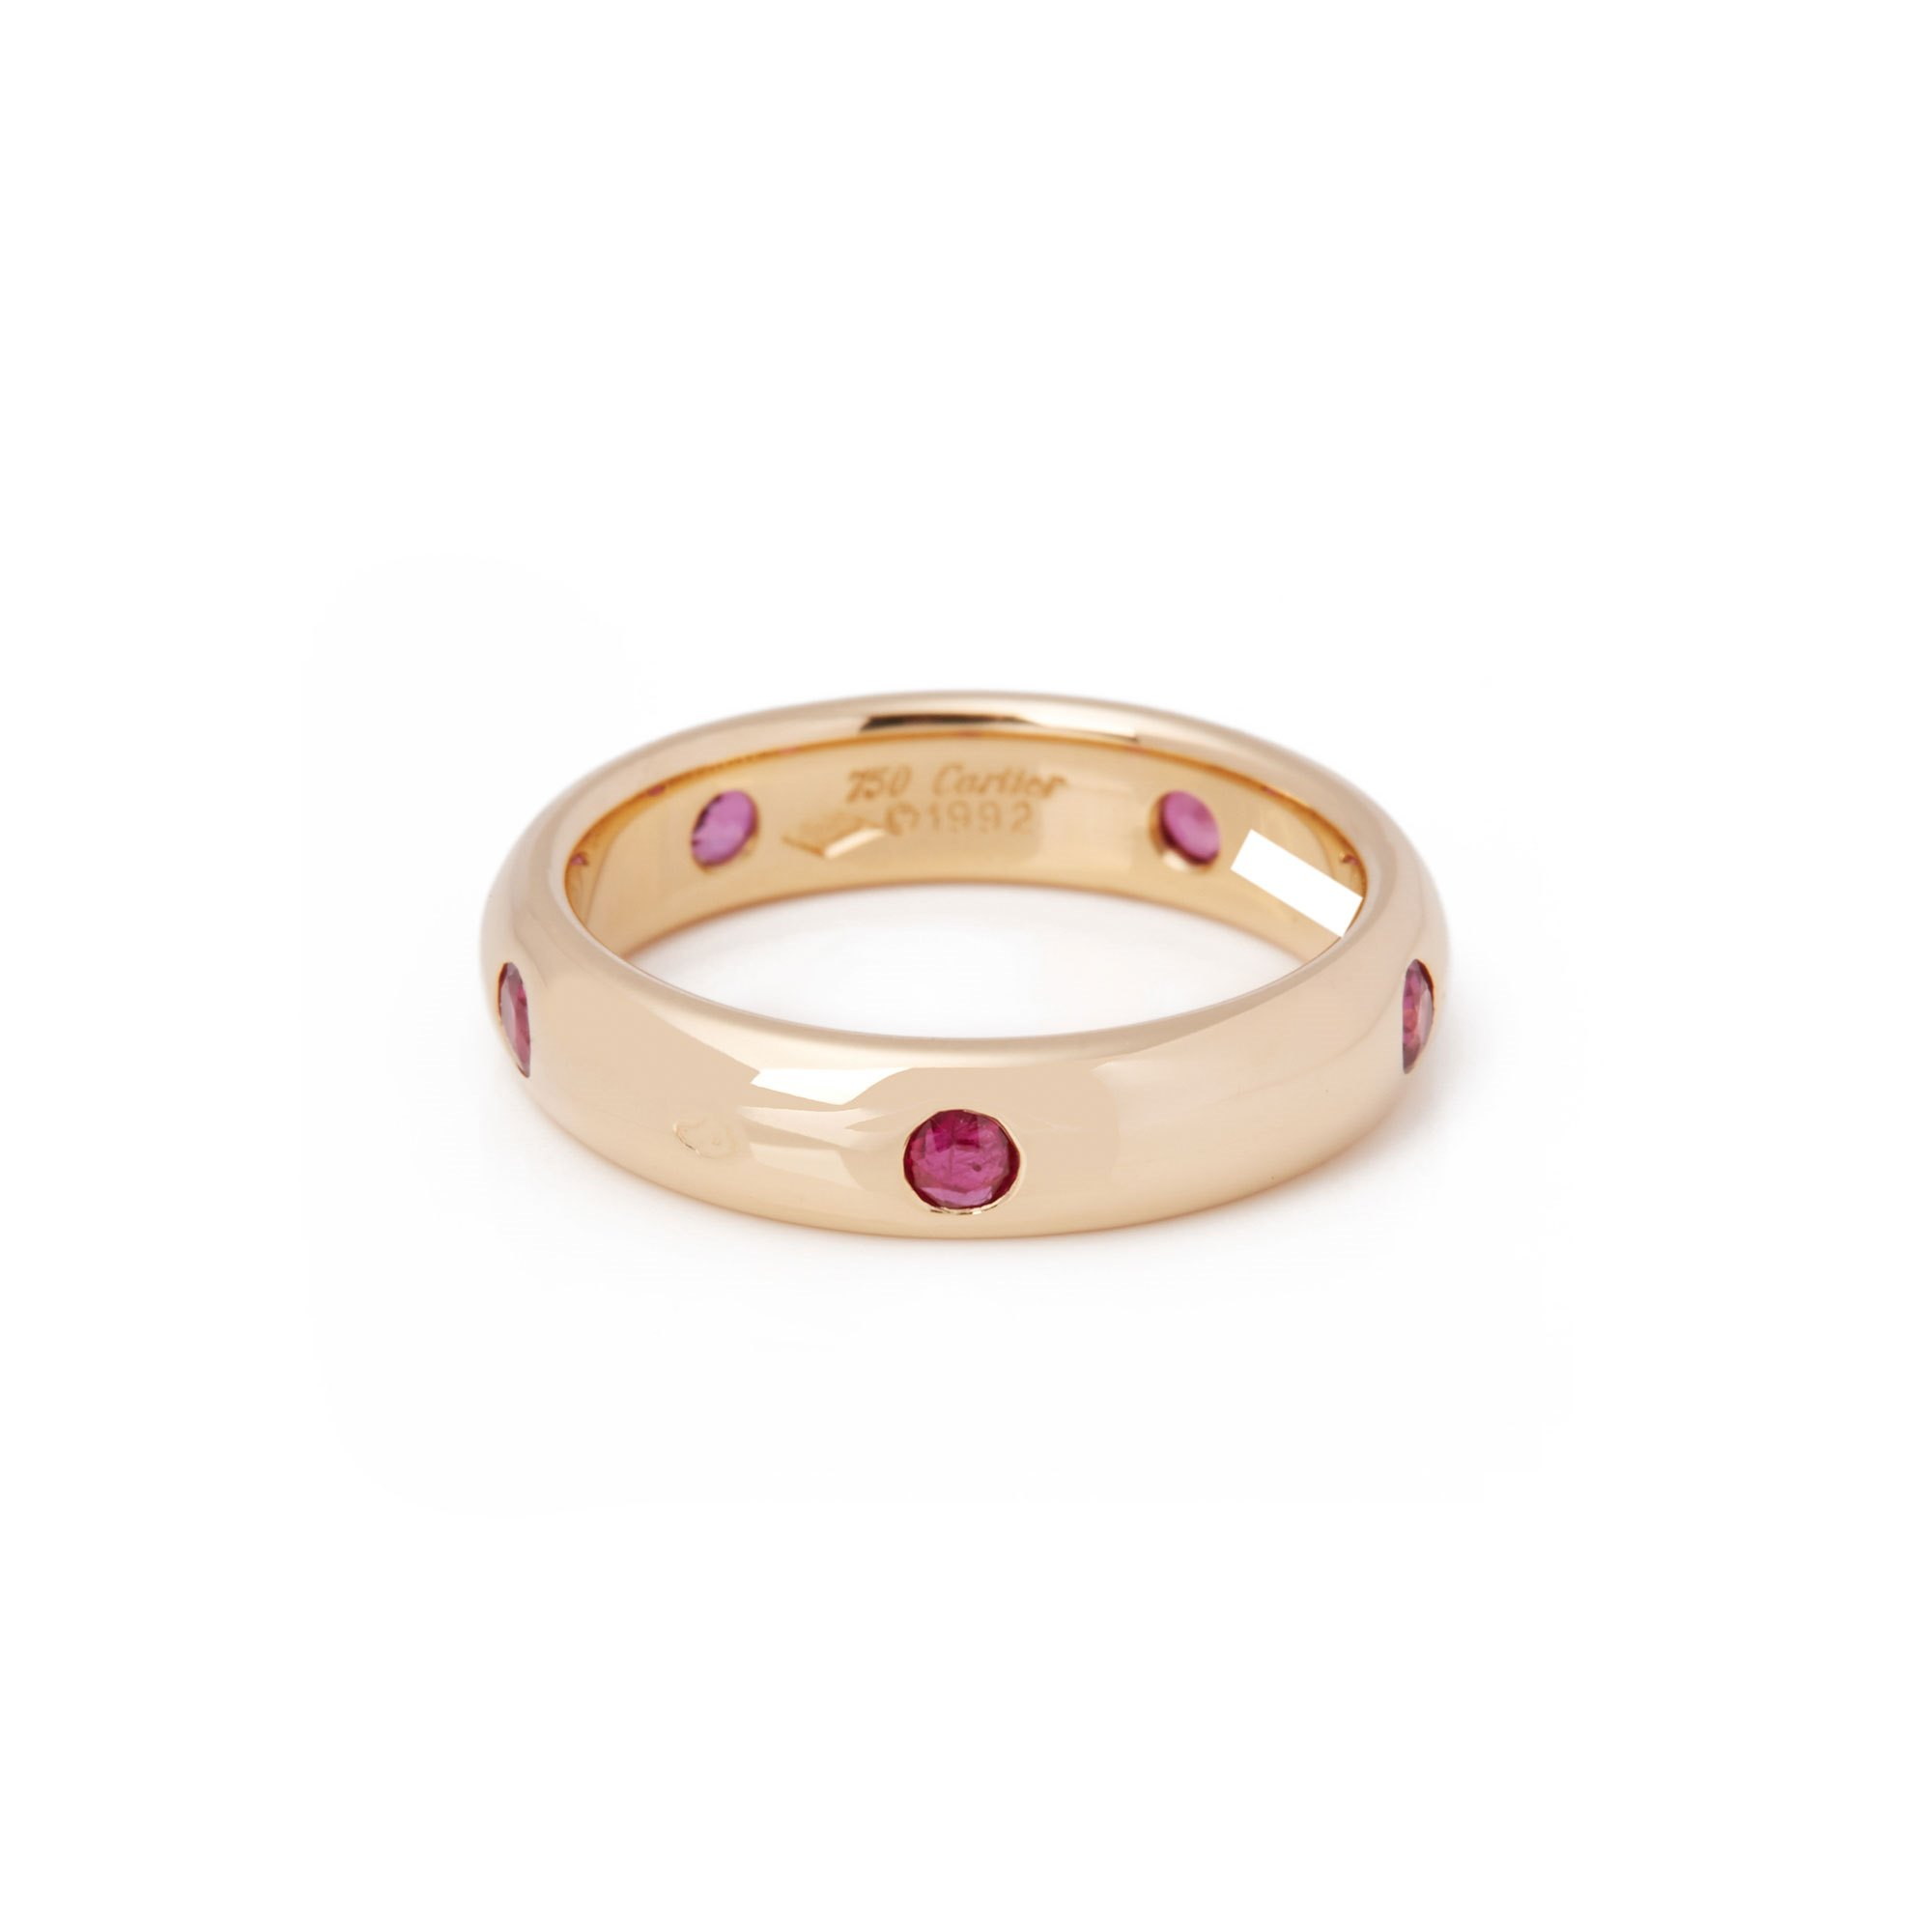 Cartier Stella 18ct Gold Ruby Band Ring